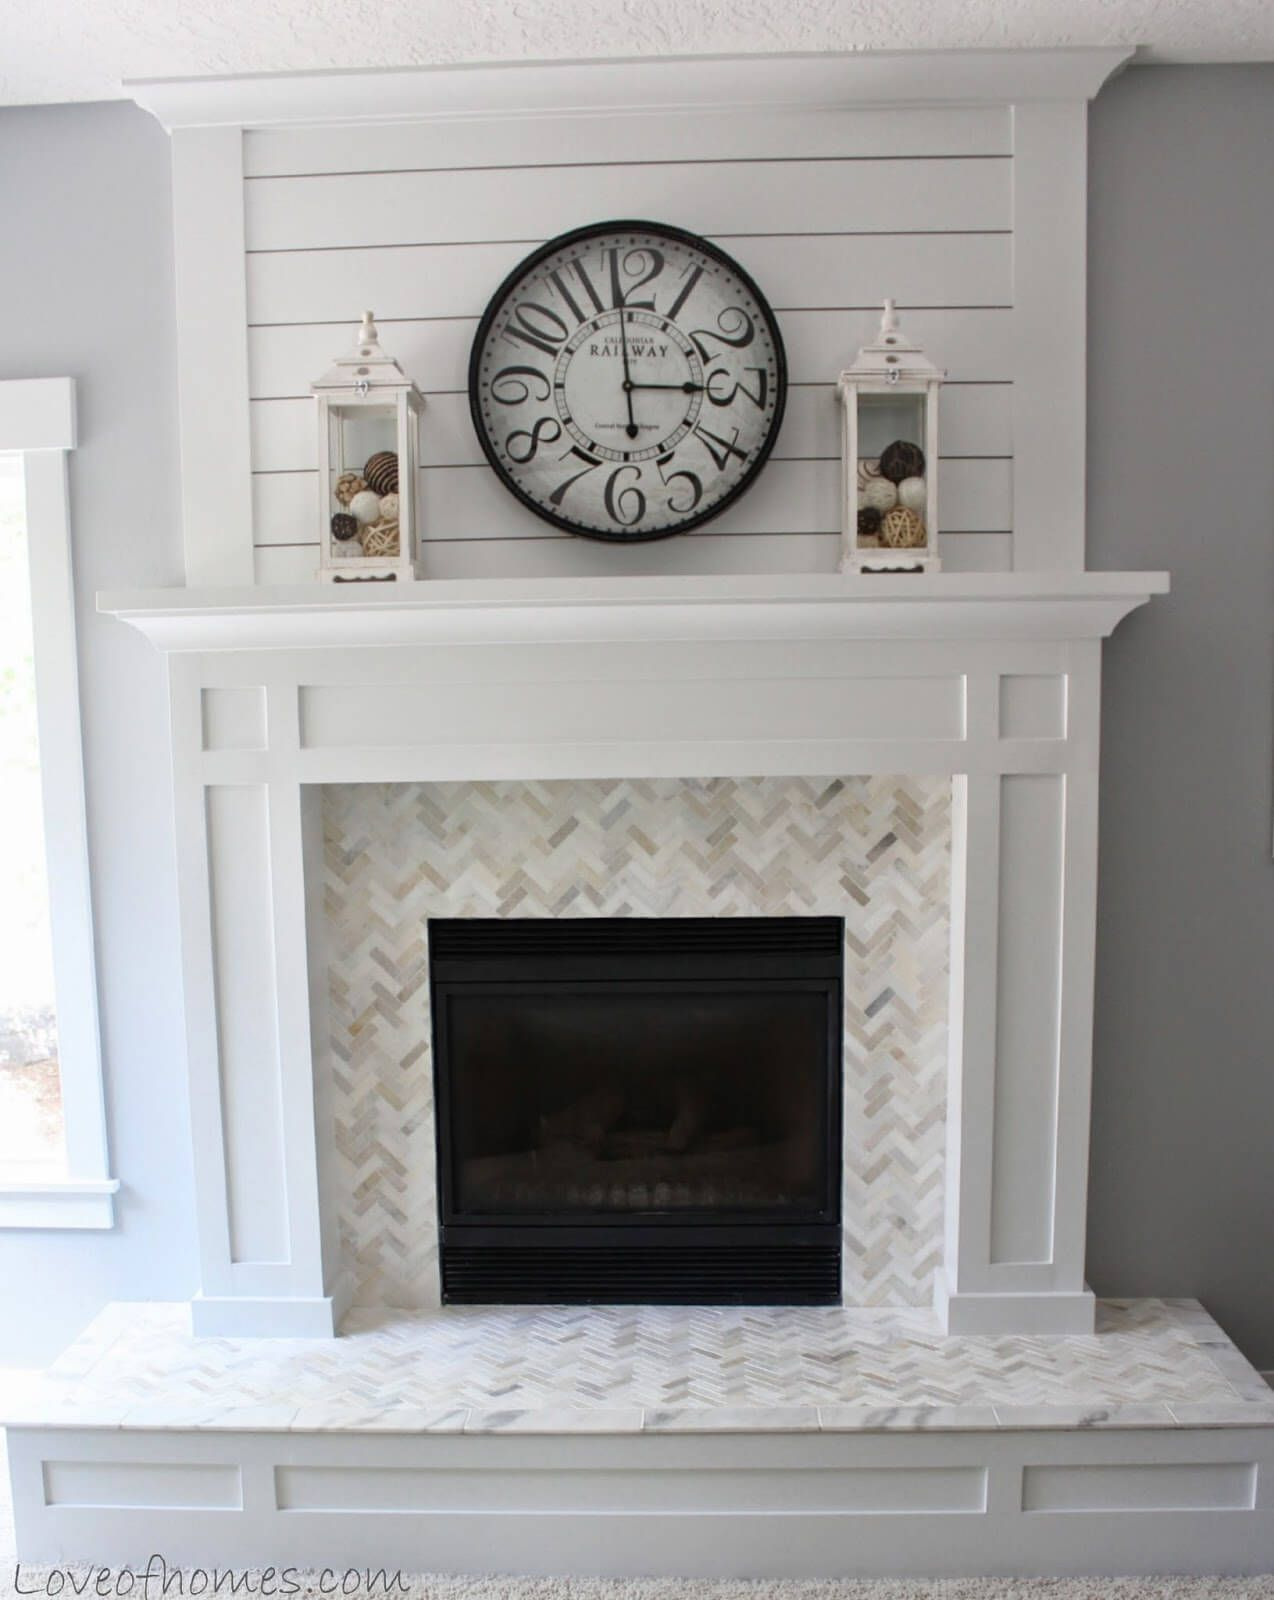 32 Eye Catching Fireplace Design Ideas That Will Make You Feel Cozy White And Grey Modern Farmhouse